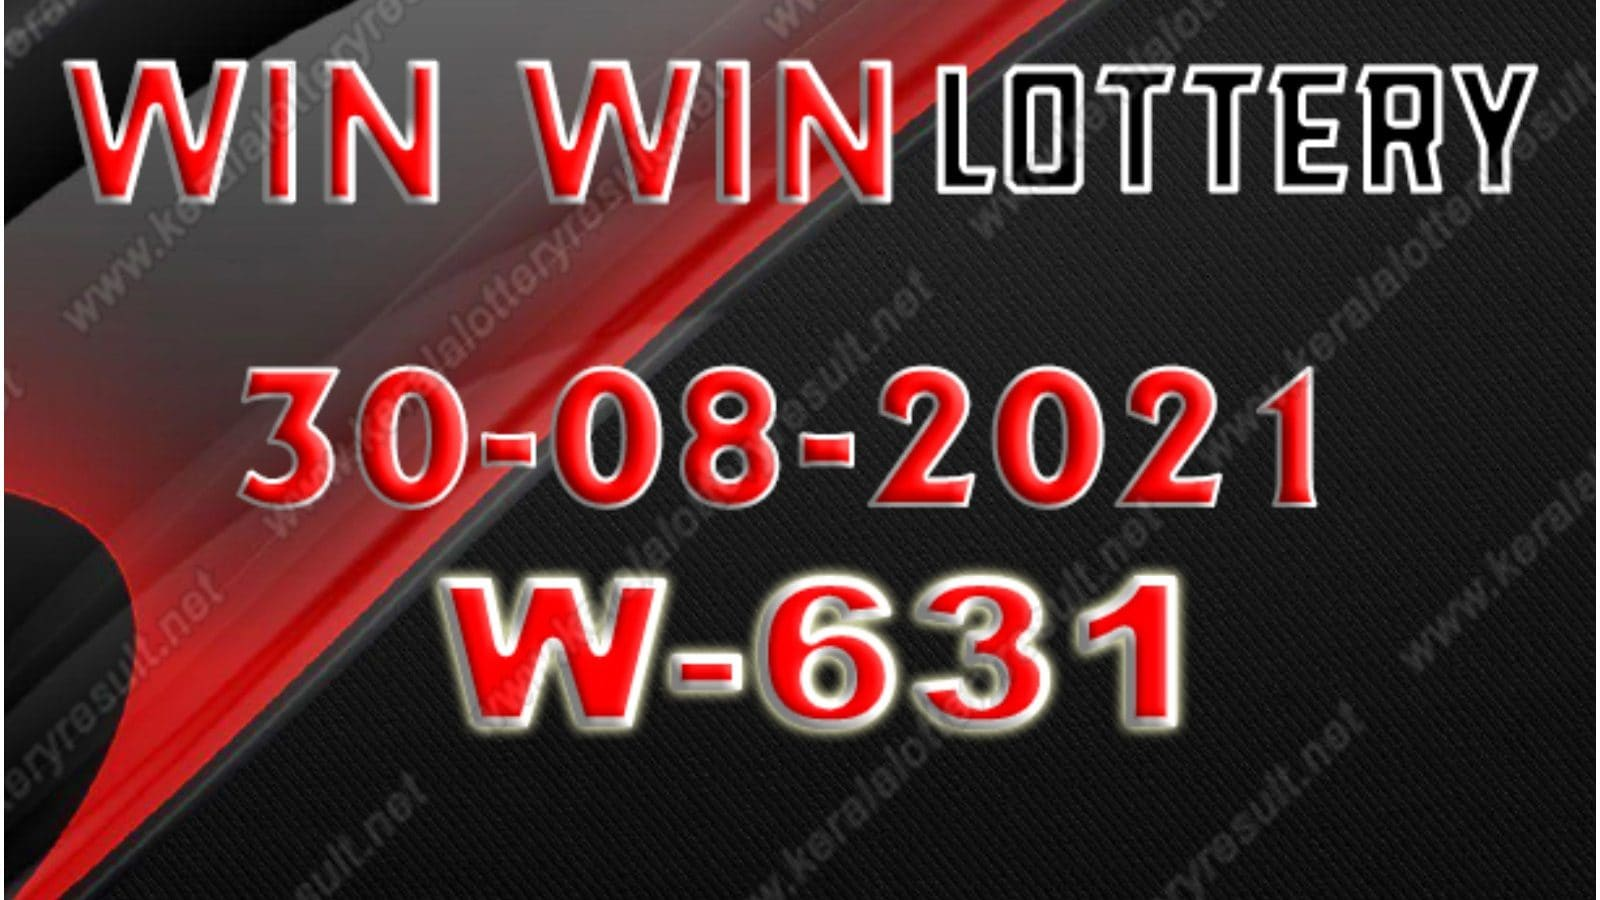 Kerala Win Win W-631 Lottery Result 2021 Live Updates: Check Winning Numbers for August 30